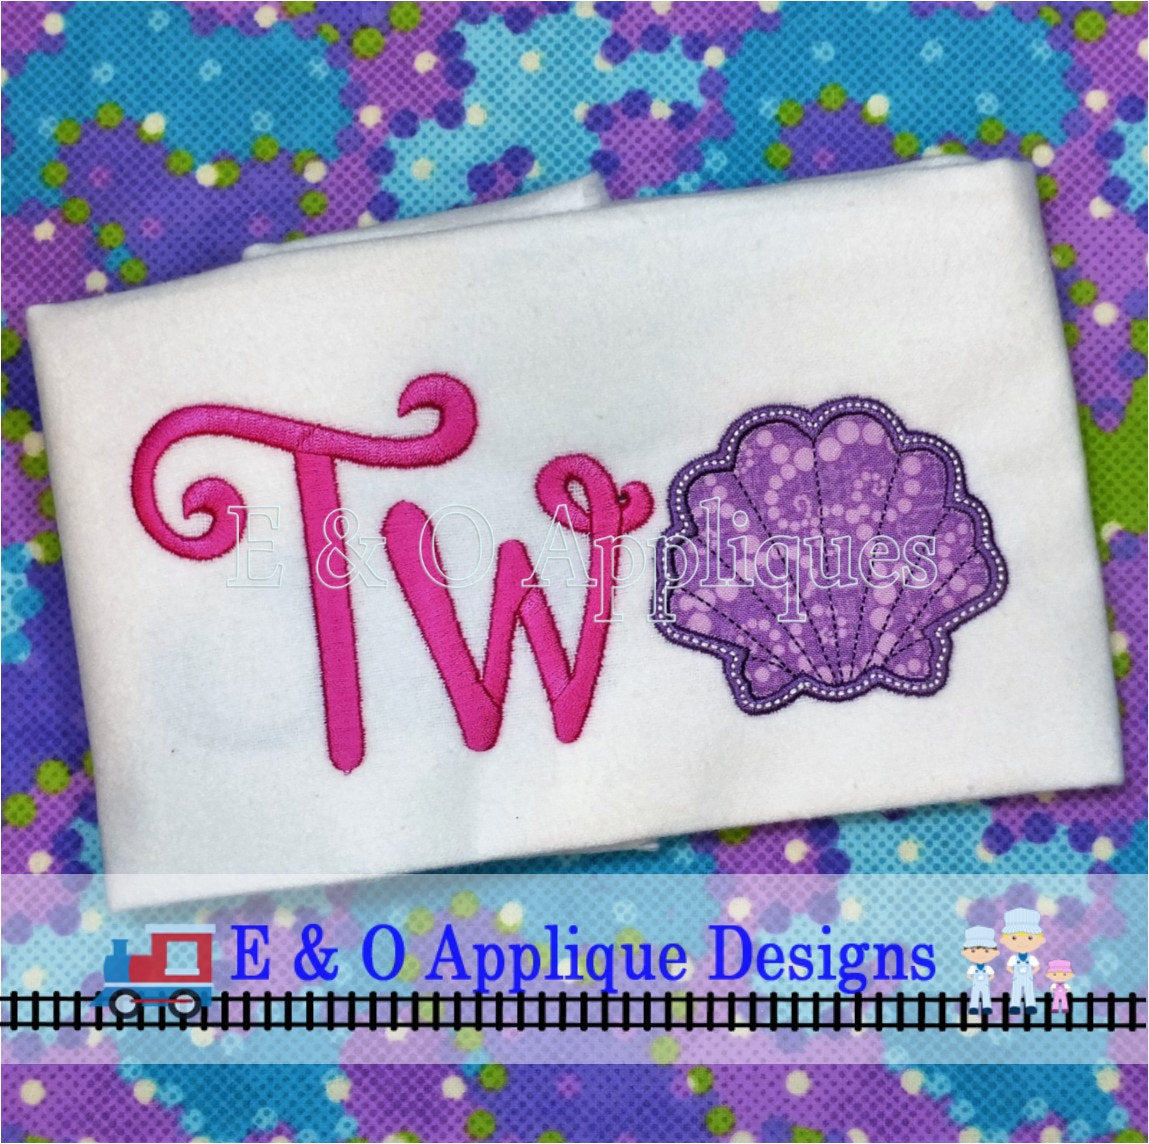 Seashell Two Digital Applique Design